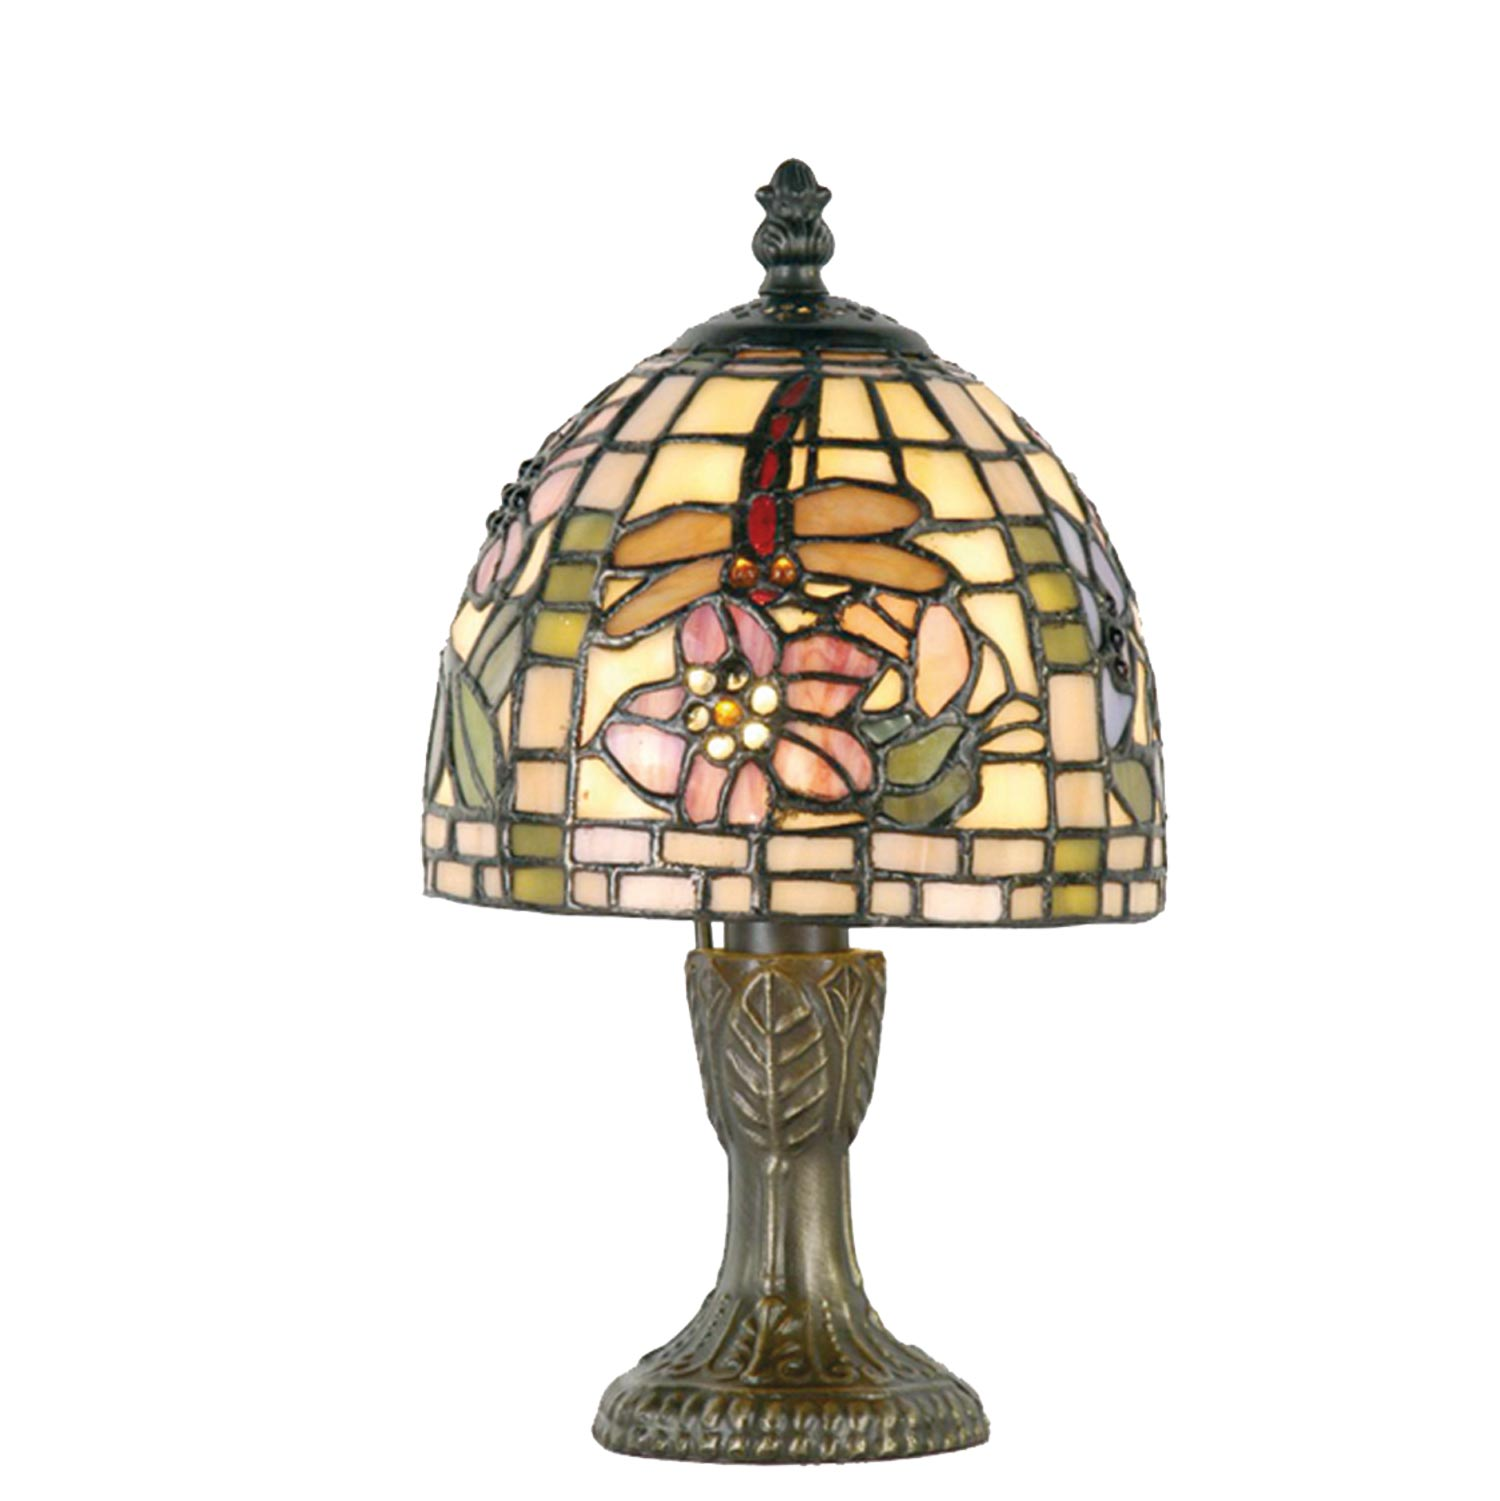 Tiffany Lampen Tischleuchte Clayre And Eef 5ll 9043 Tiffany Tischlampe Quotcherryblossom Quot